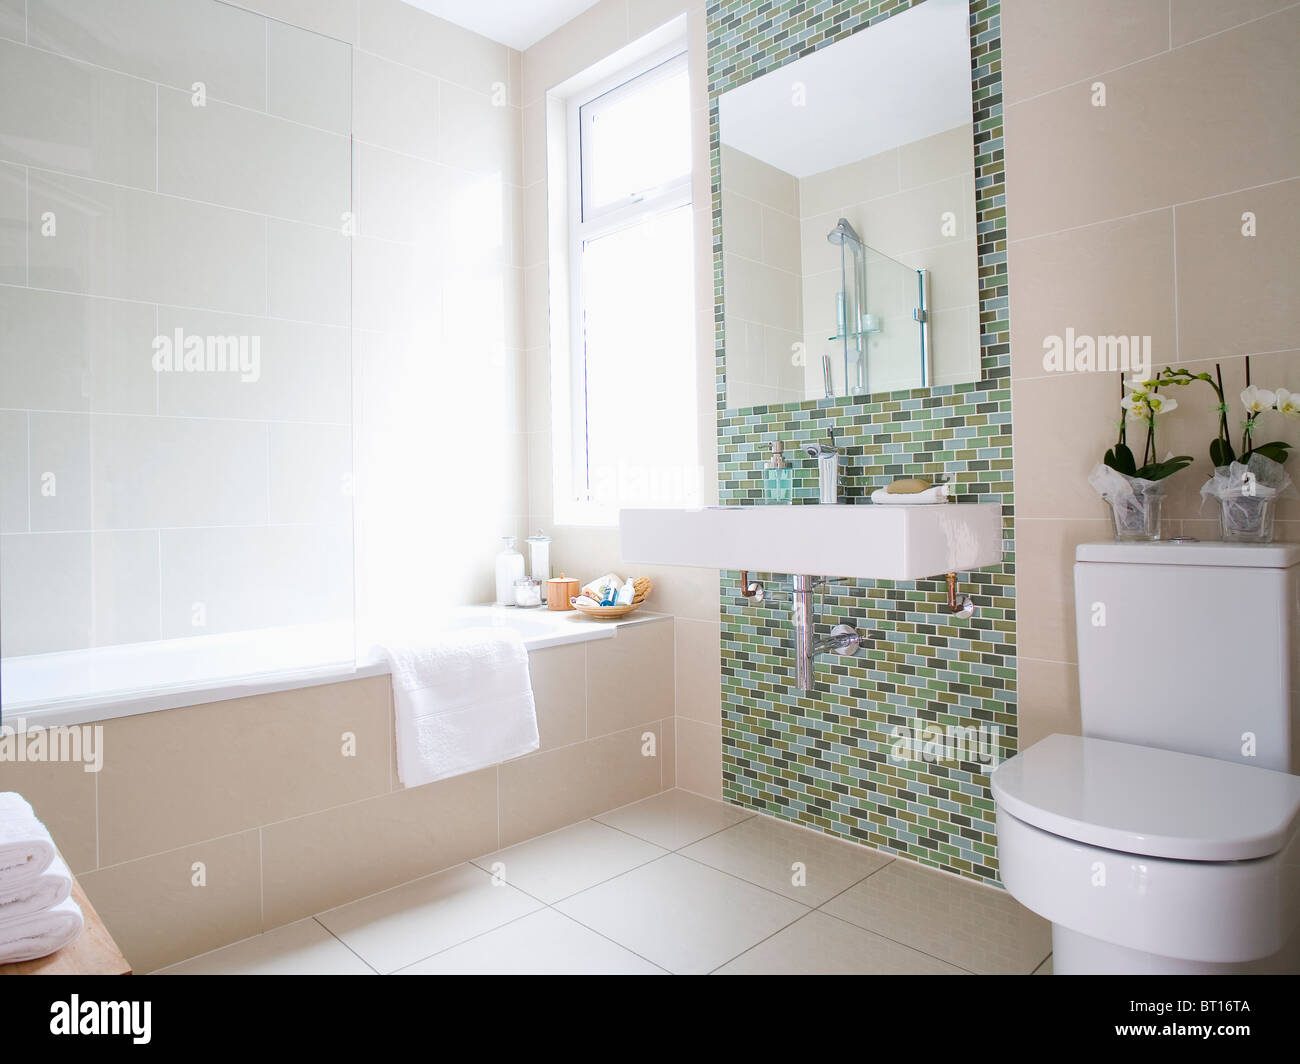 Large Mirror Rectangular White Basin Stock Photos & Large Mirror ...